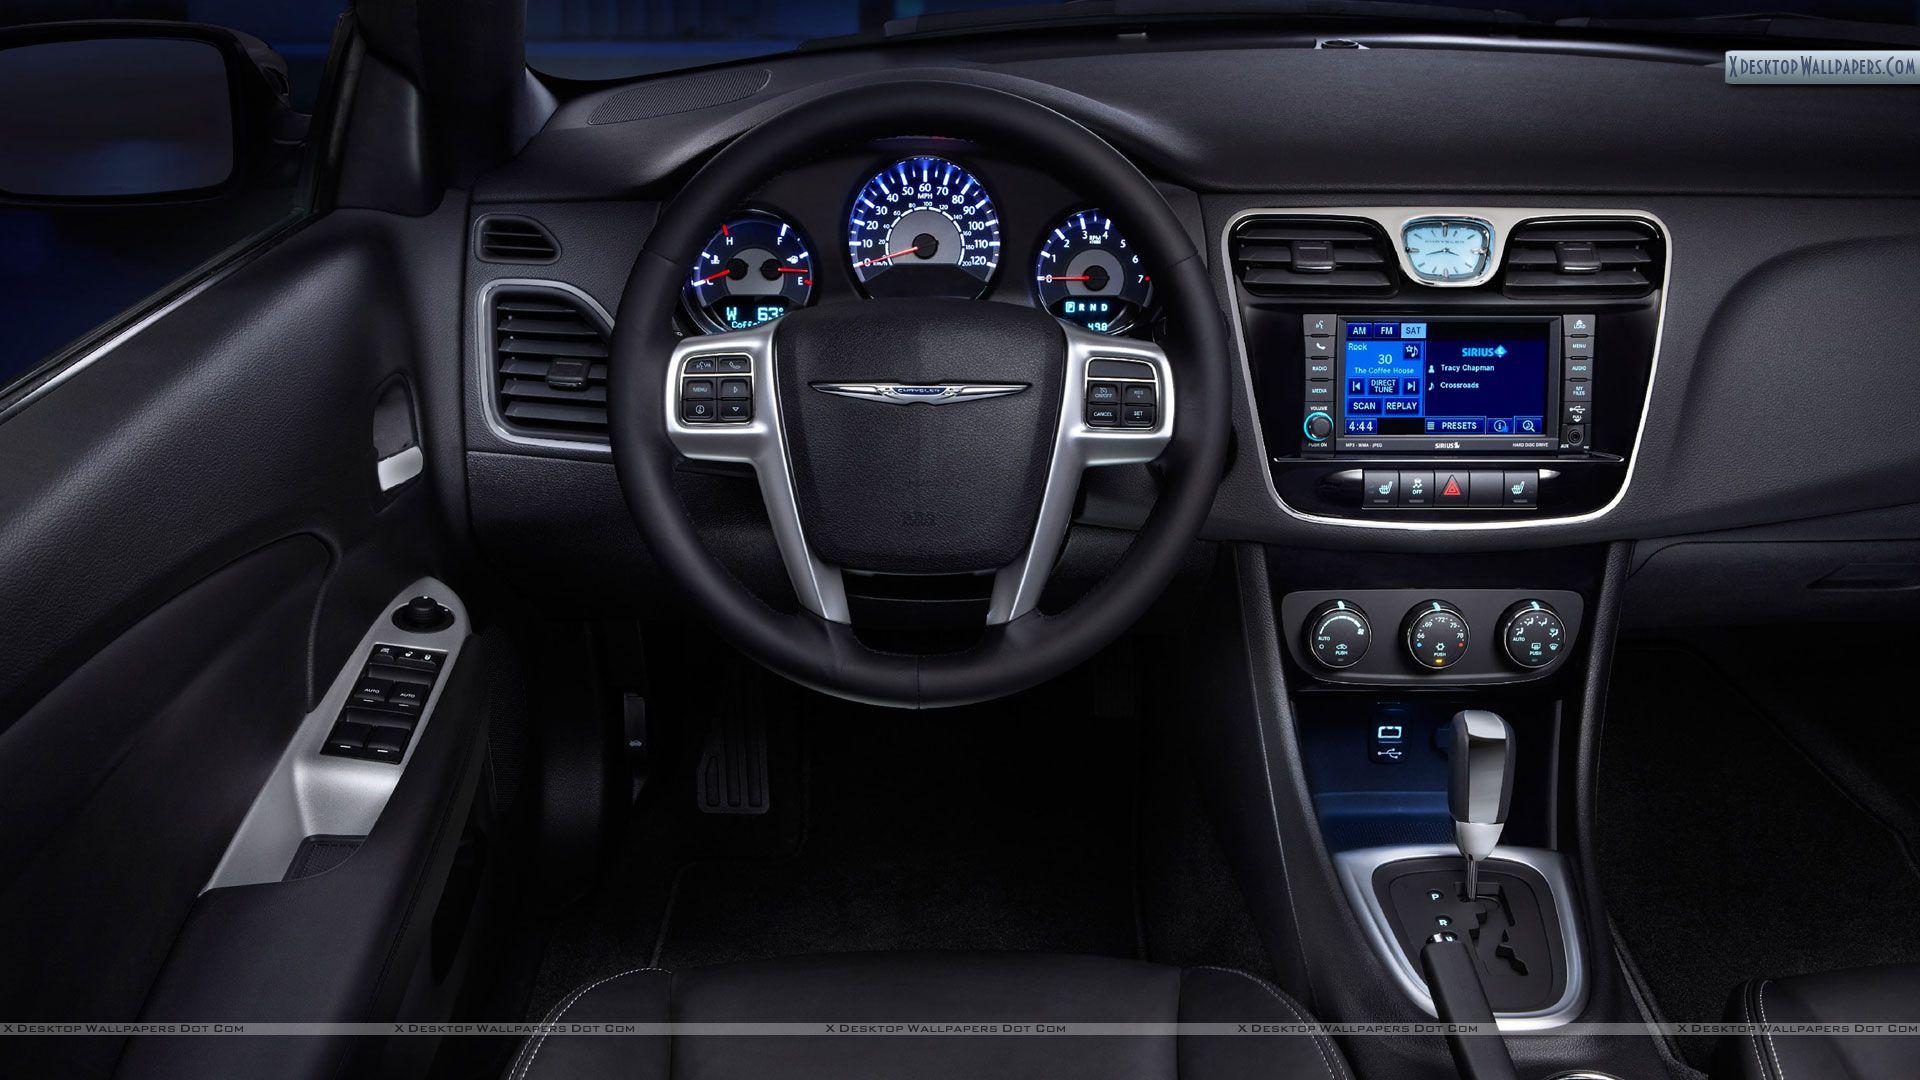 Chrysler 200 Wallpapers, Photos & Images in HD